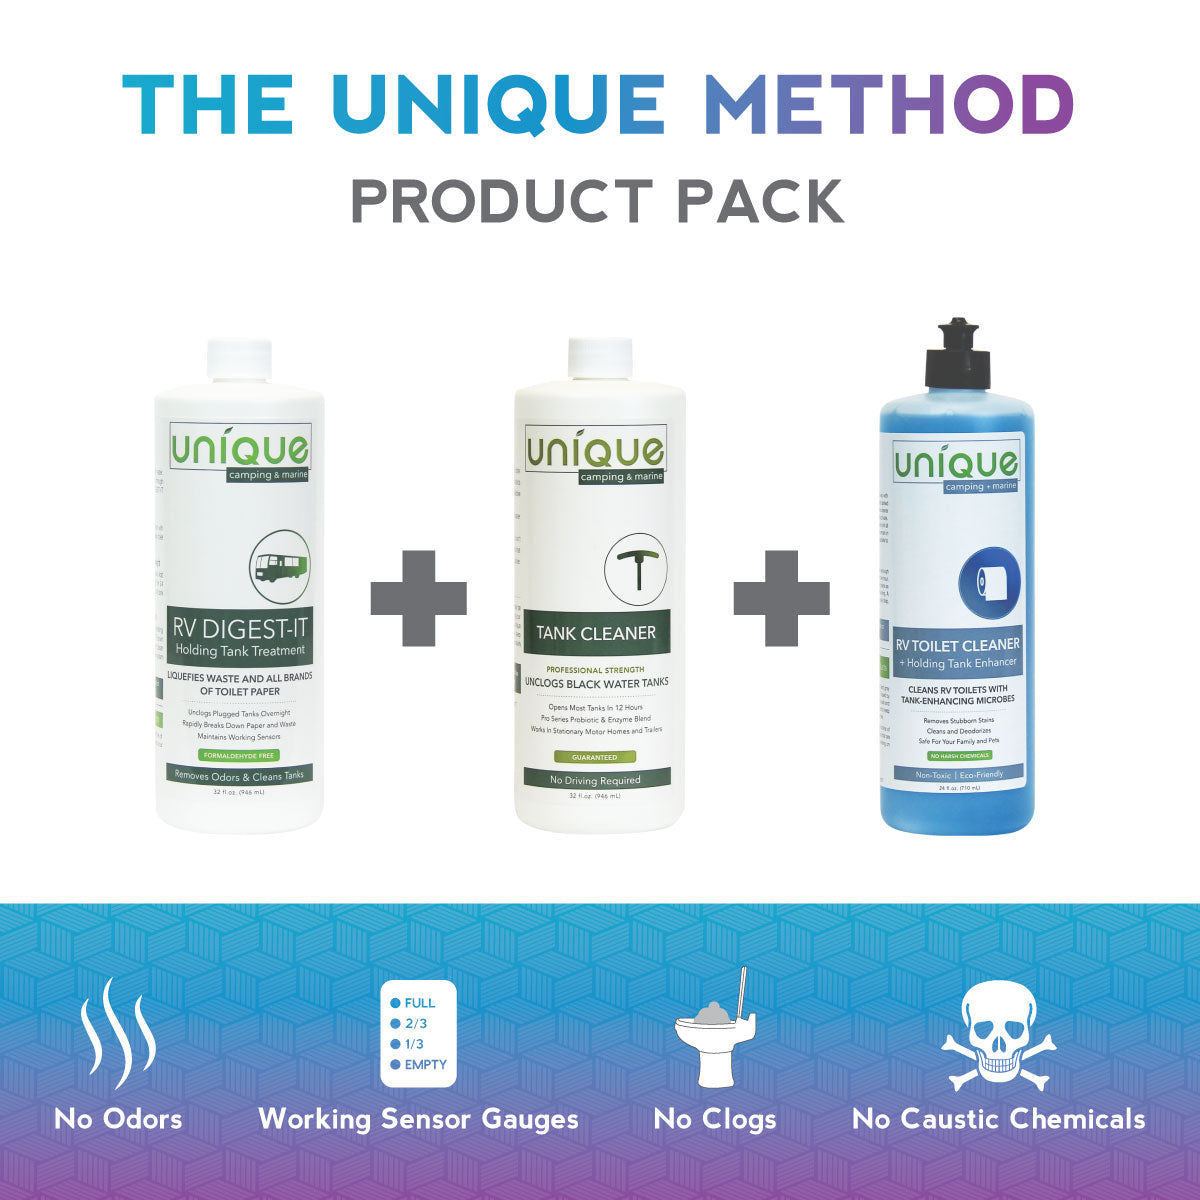 The Unique Method Product Pack Image RV Digest-It RV Toilet Bowl Cleaner RV Tank Cleaner Bottles